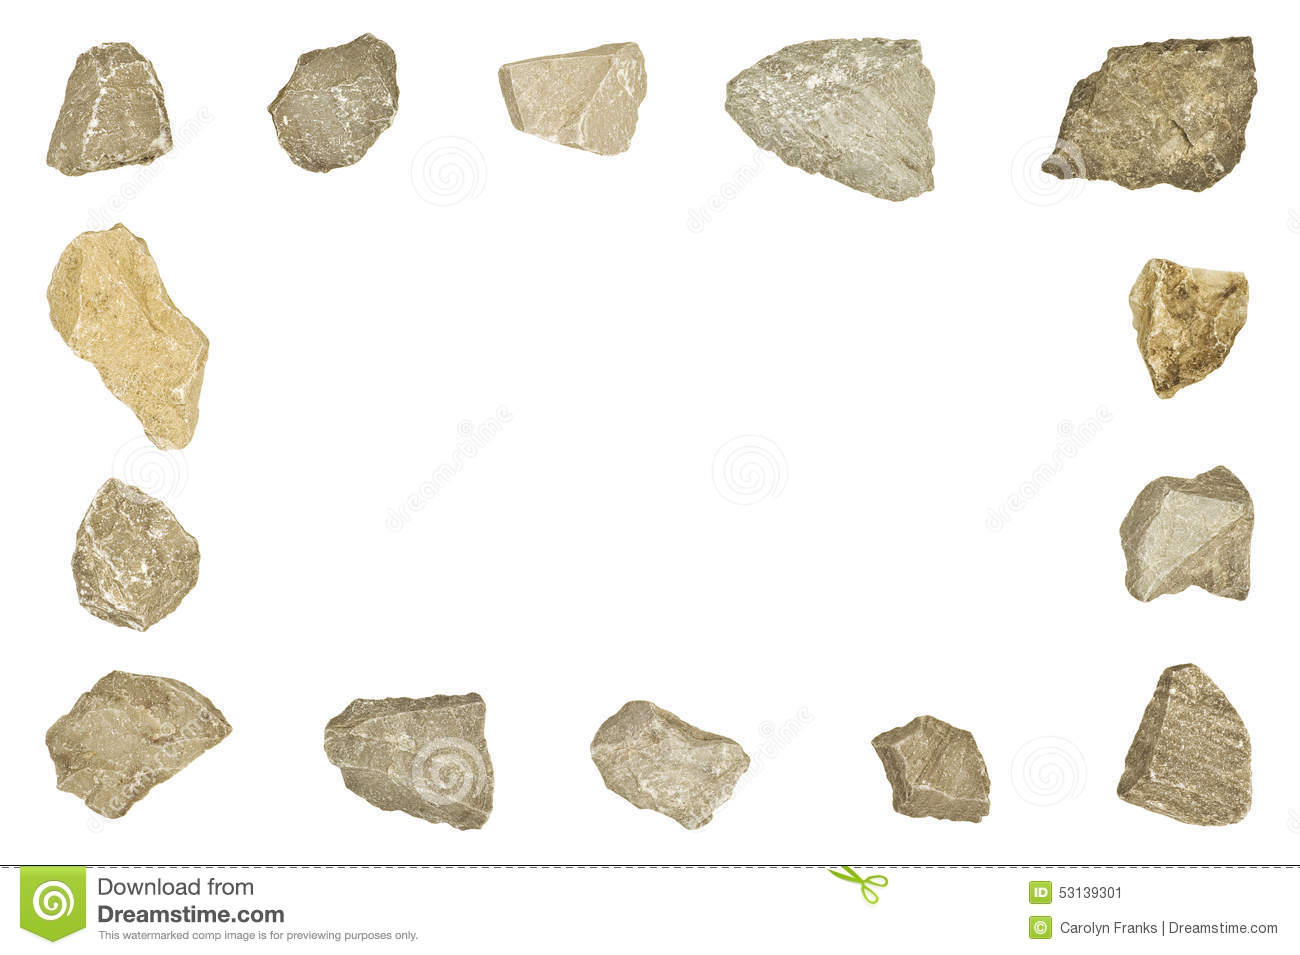 page border made of different shaped rocks on a white background.